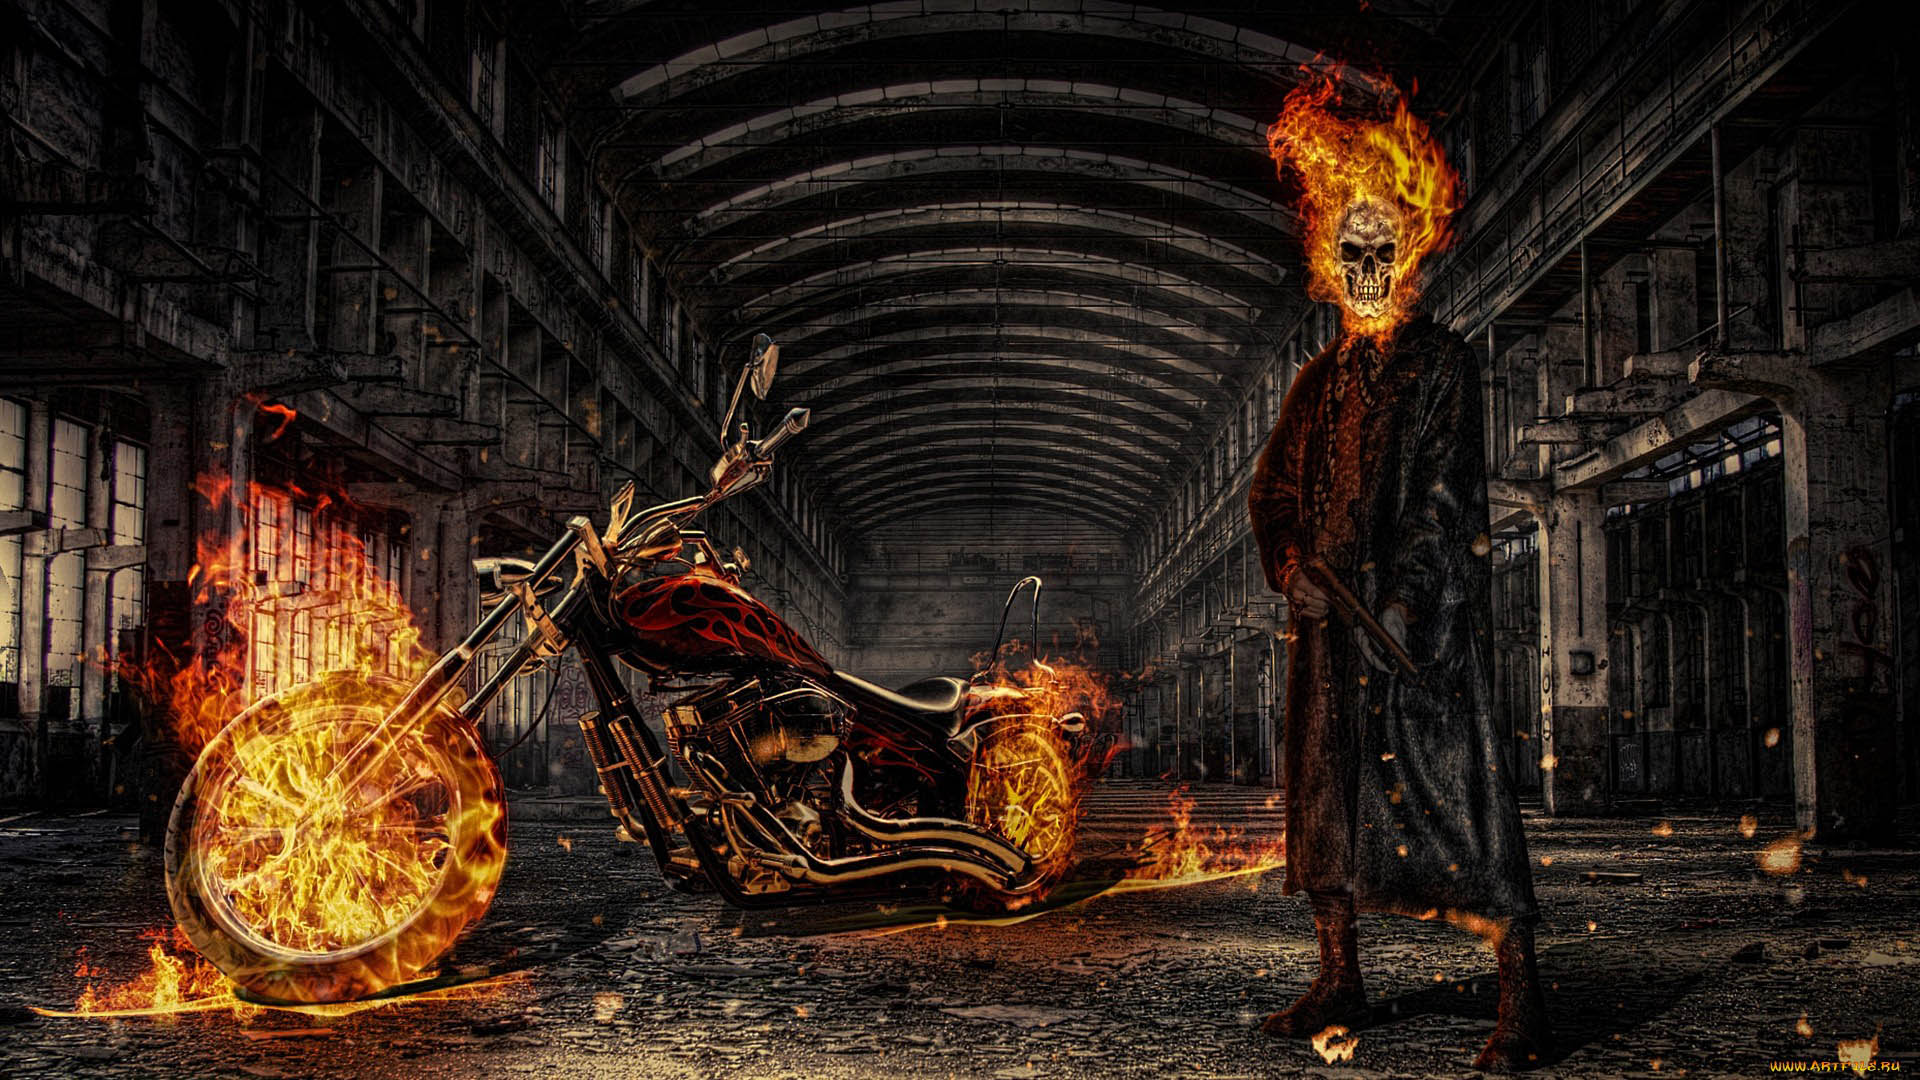 گوست رایدر - مارول کامیکس - جانی بلیز - ghost rider - marvel comics - johnny blaze